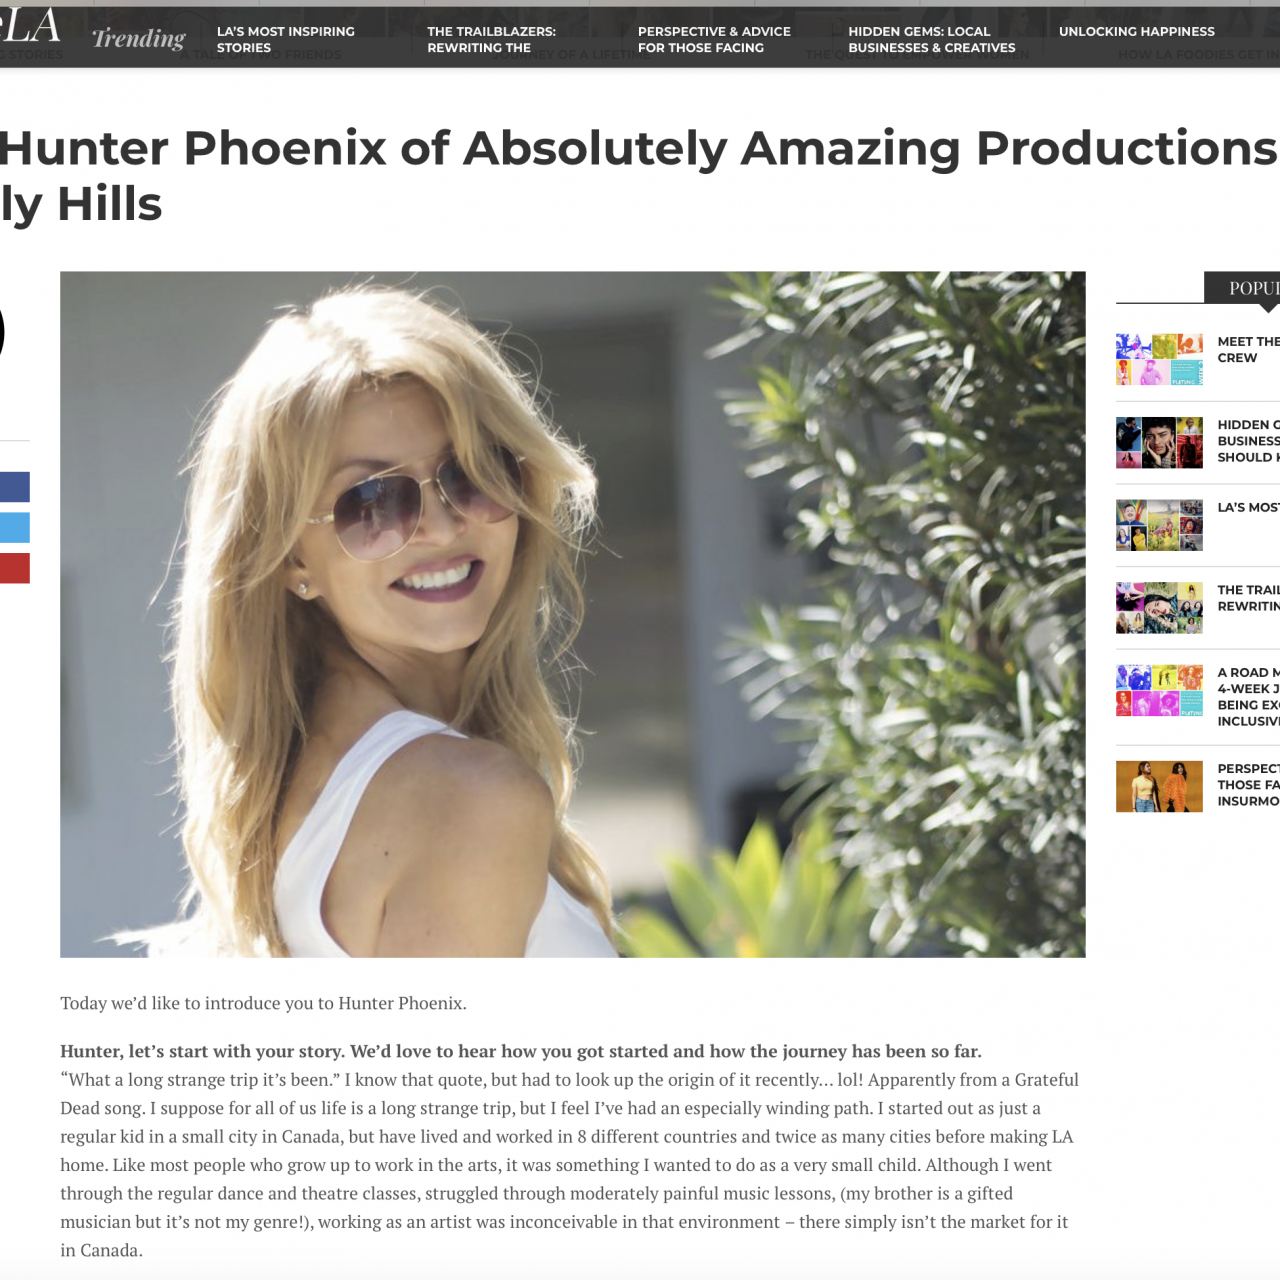 Voyage LA: Meet Hunter Phoenix